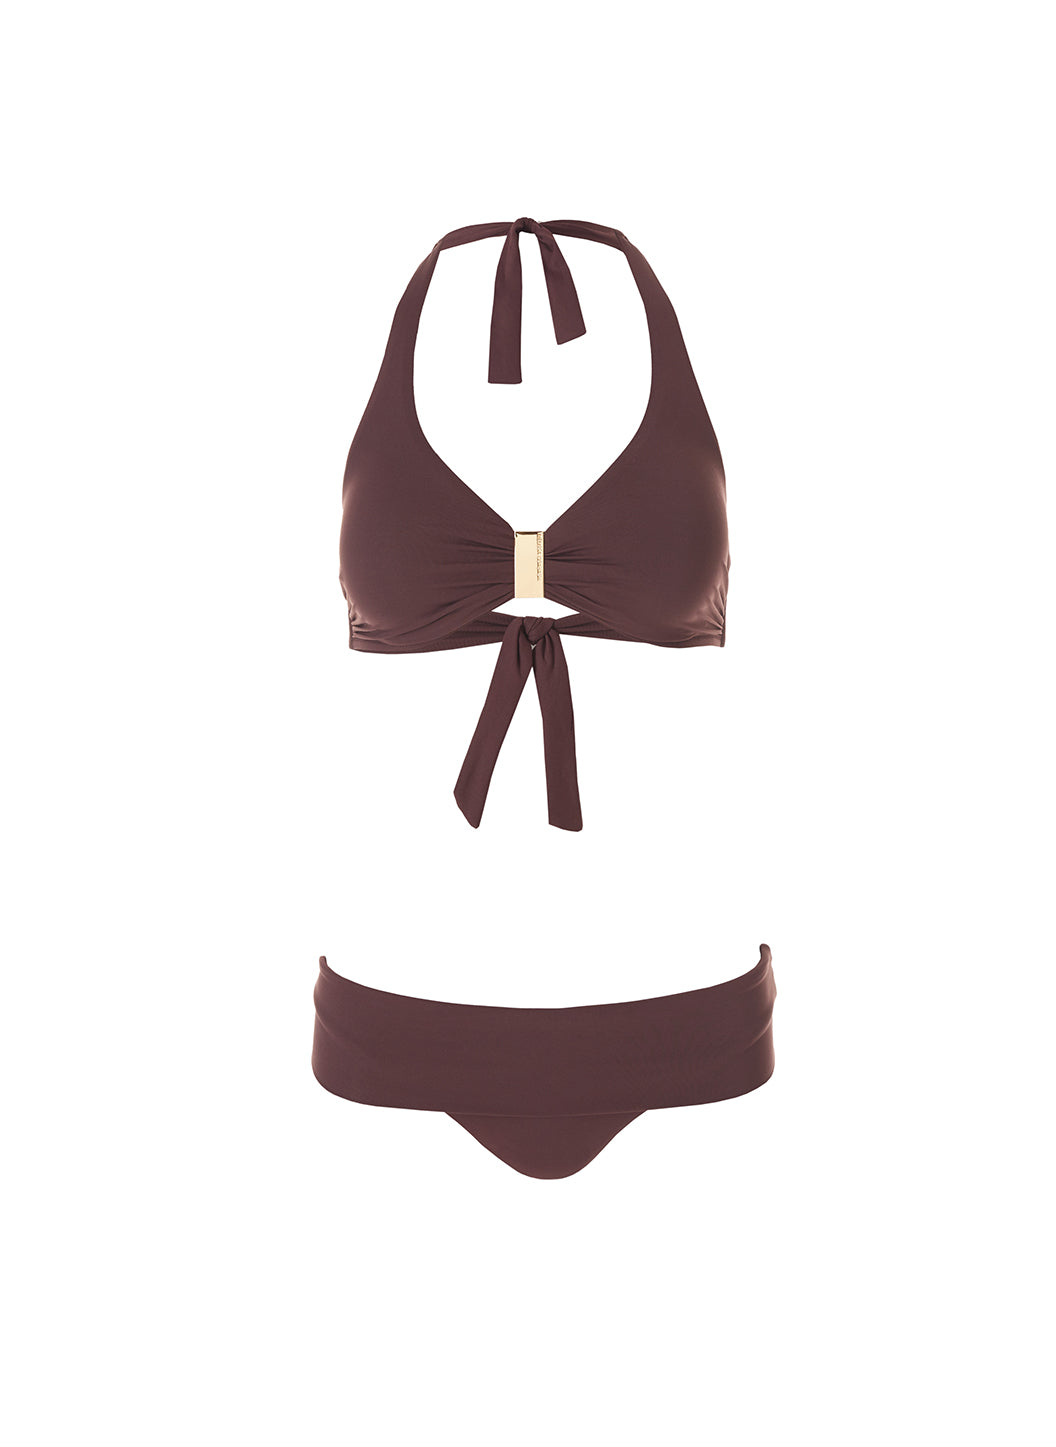 Exclusive Provence Walnut Halterneck Supportive Bikini  - Melissa Odabash Brown Bikinis